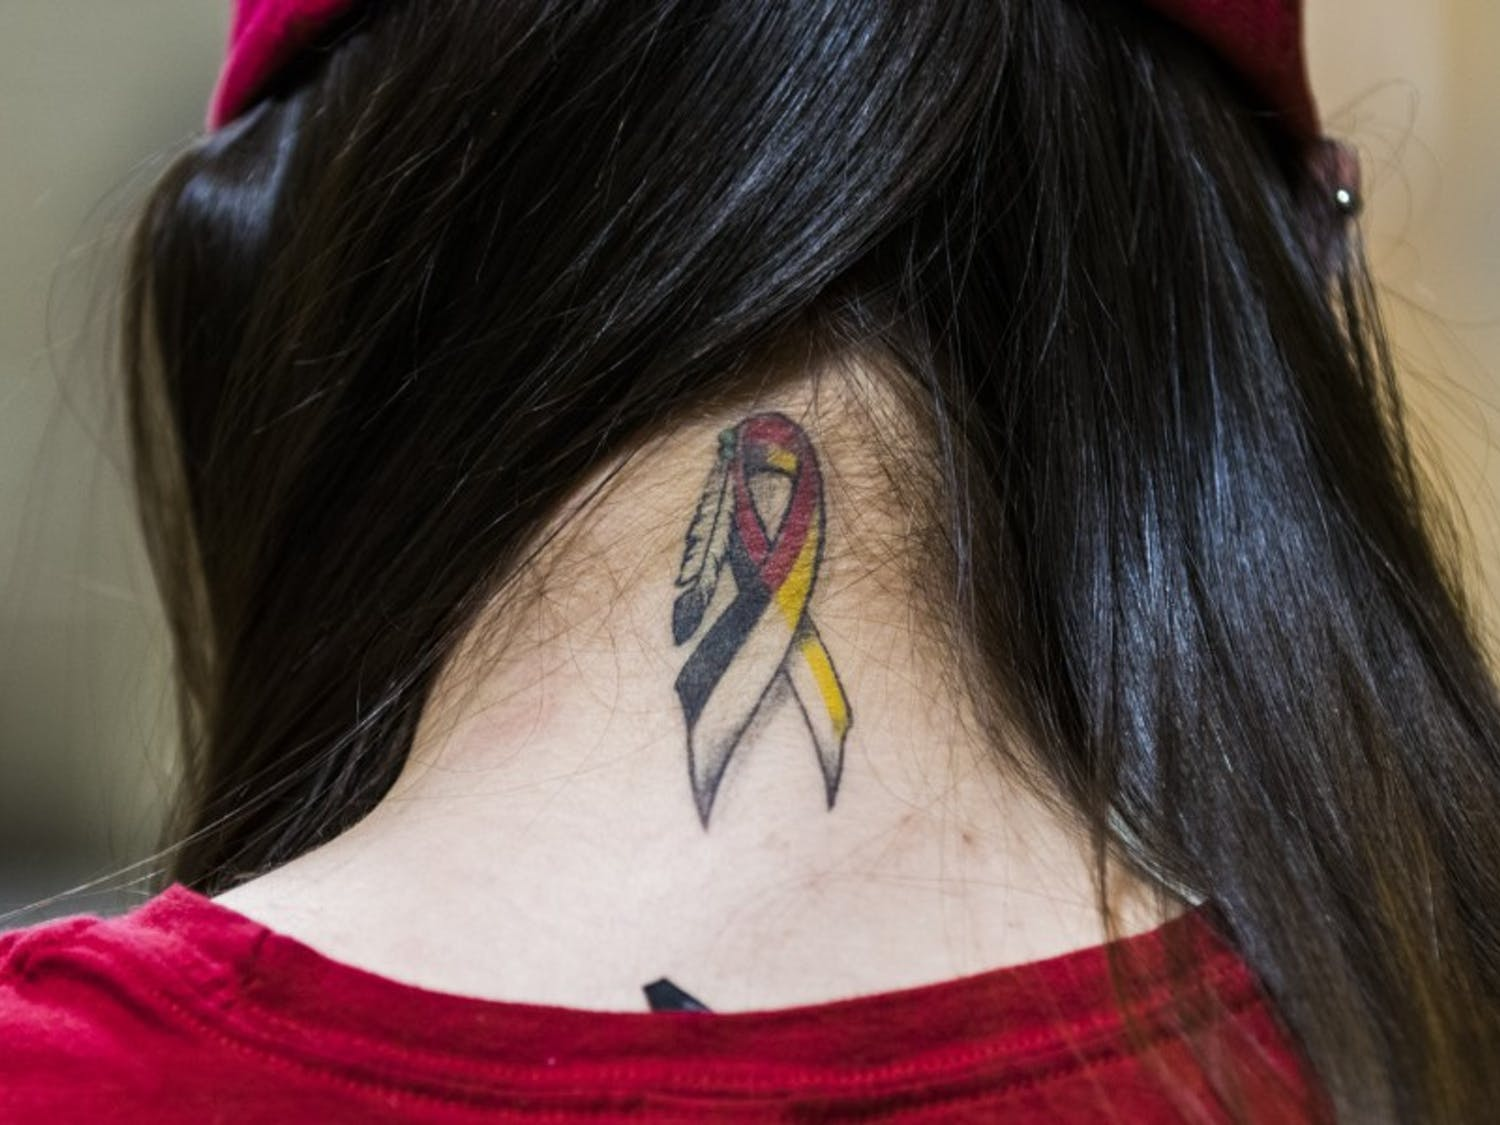 Mariah Skenandore has a tattoo on the back of her neck for missing and indigenous women, an issue surround the disproportionate amount of violence indigenous women face.